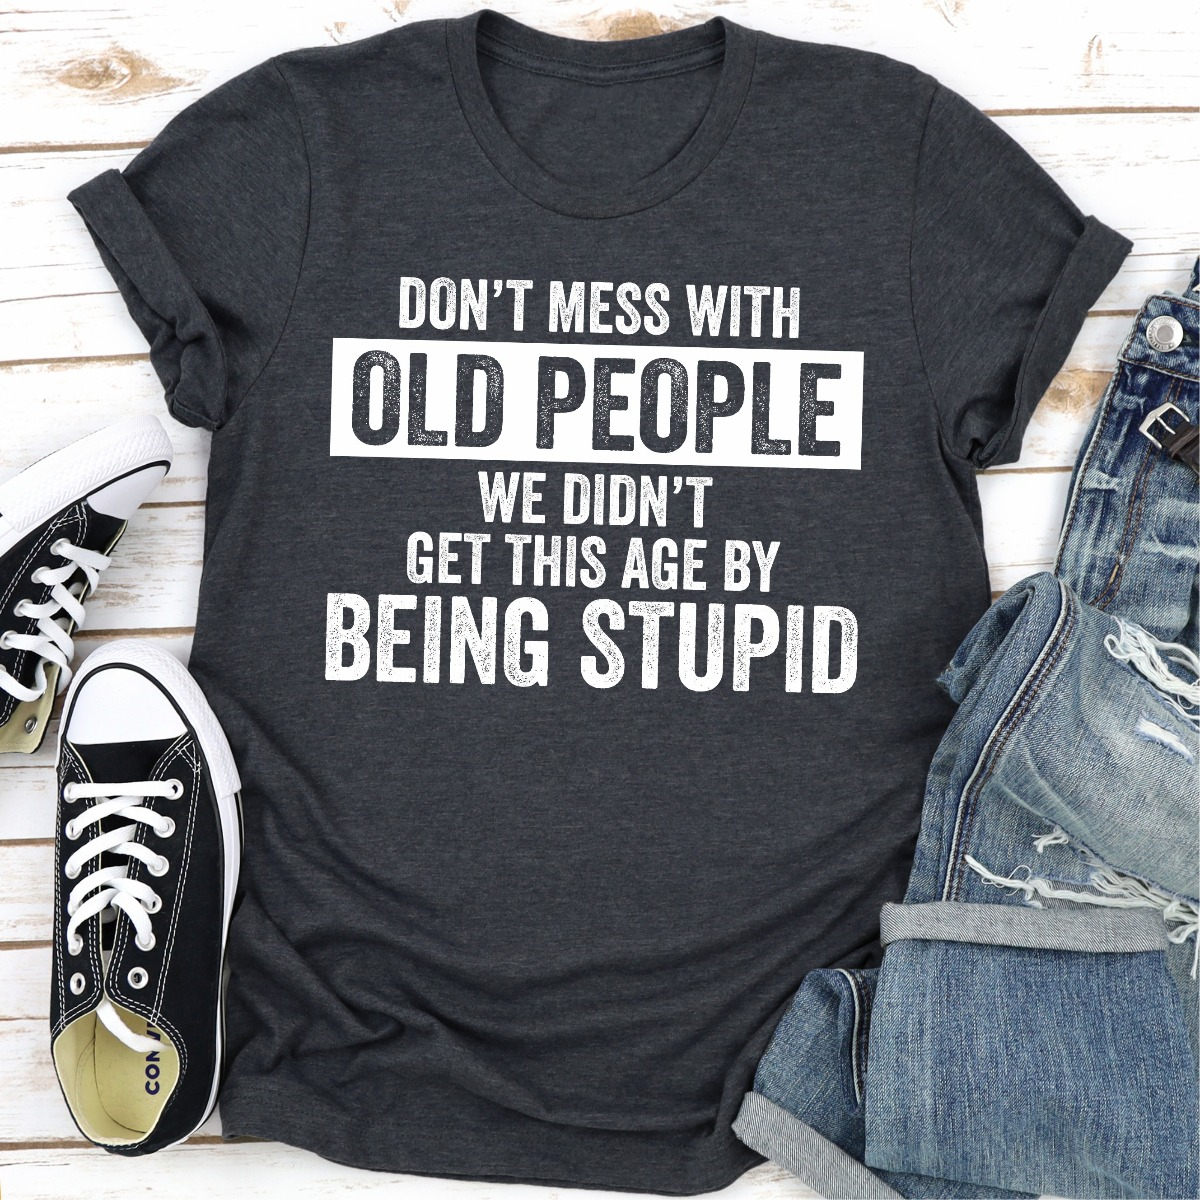 Don't Mess With Old People (Dark Heather / S)